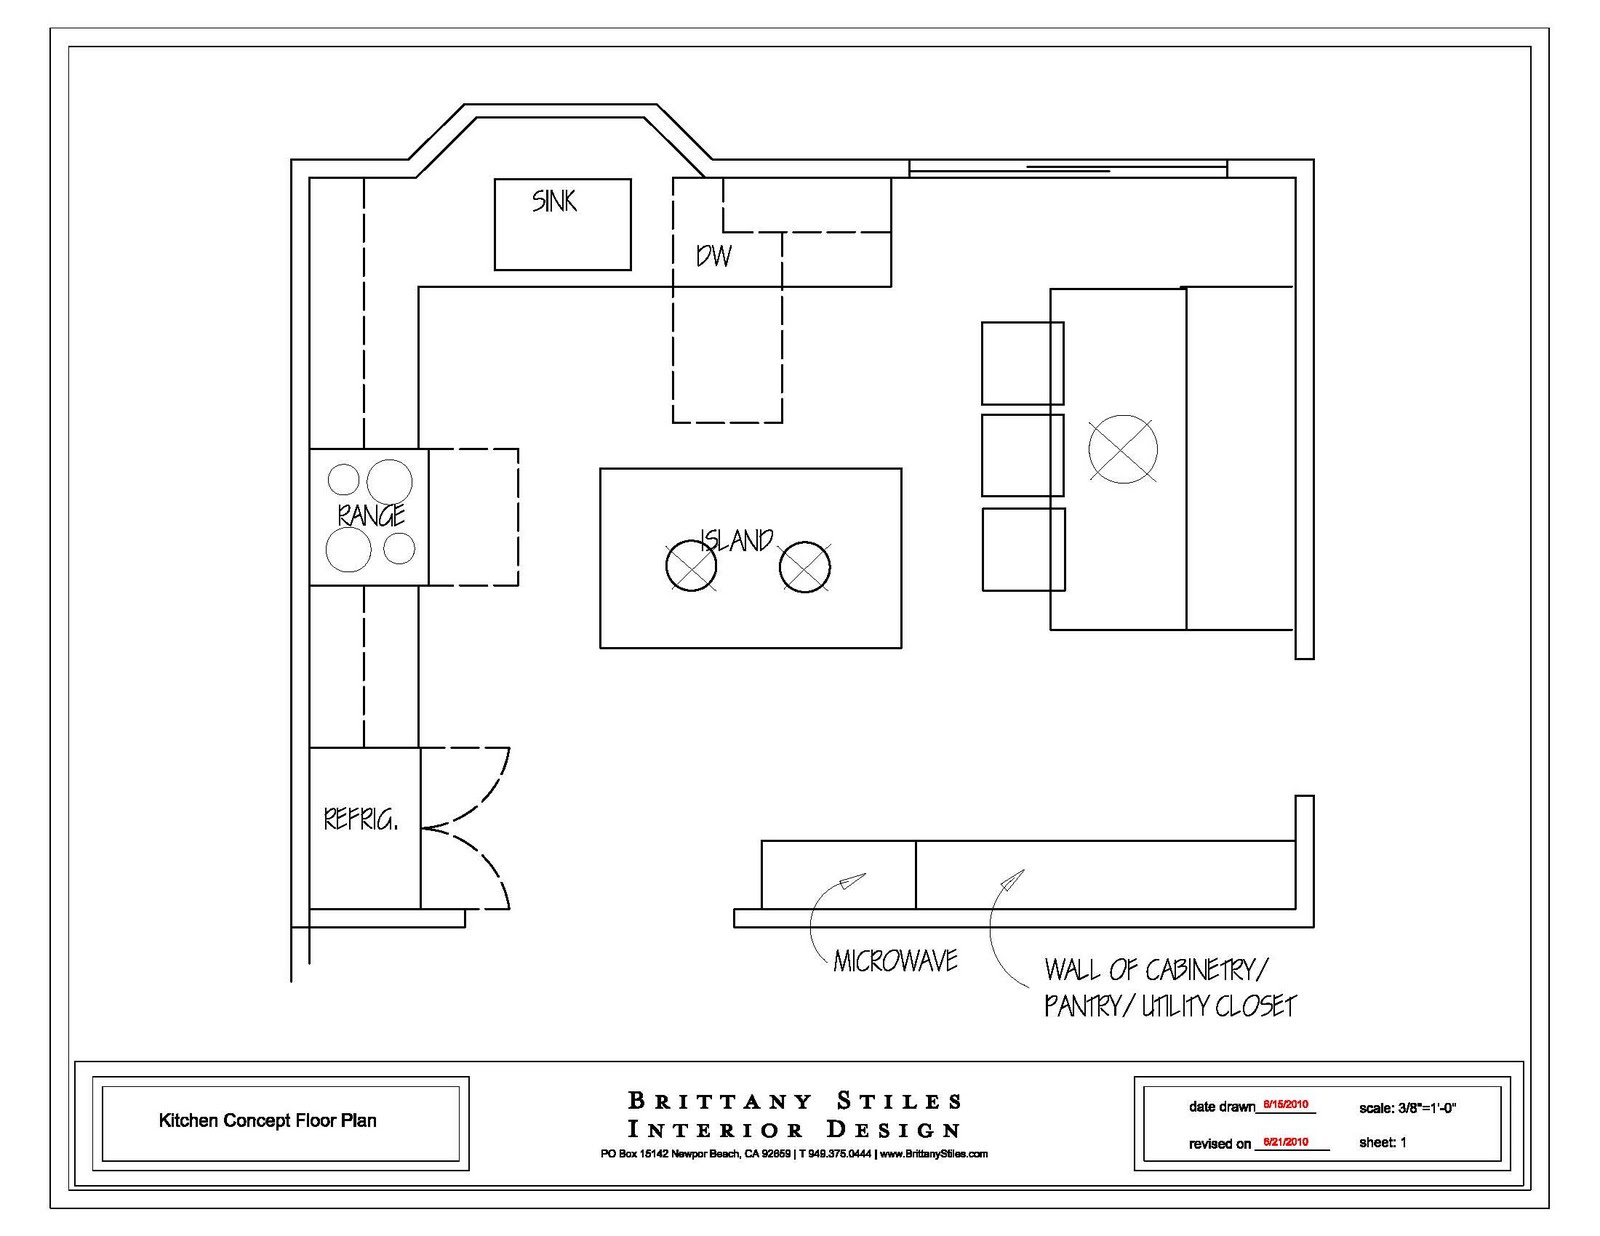 Free Printable Furniture Templates For Floor Plans | Trend Home Design ...